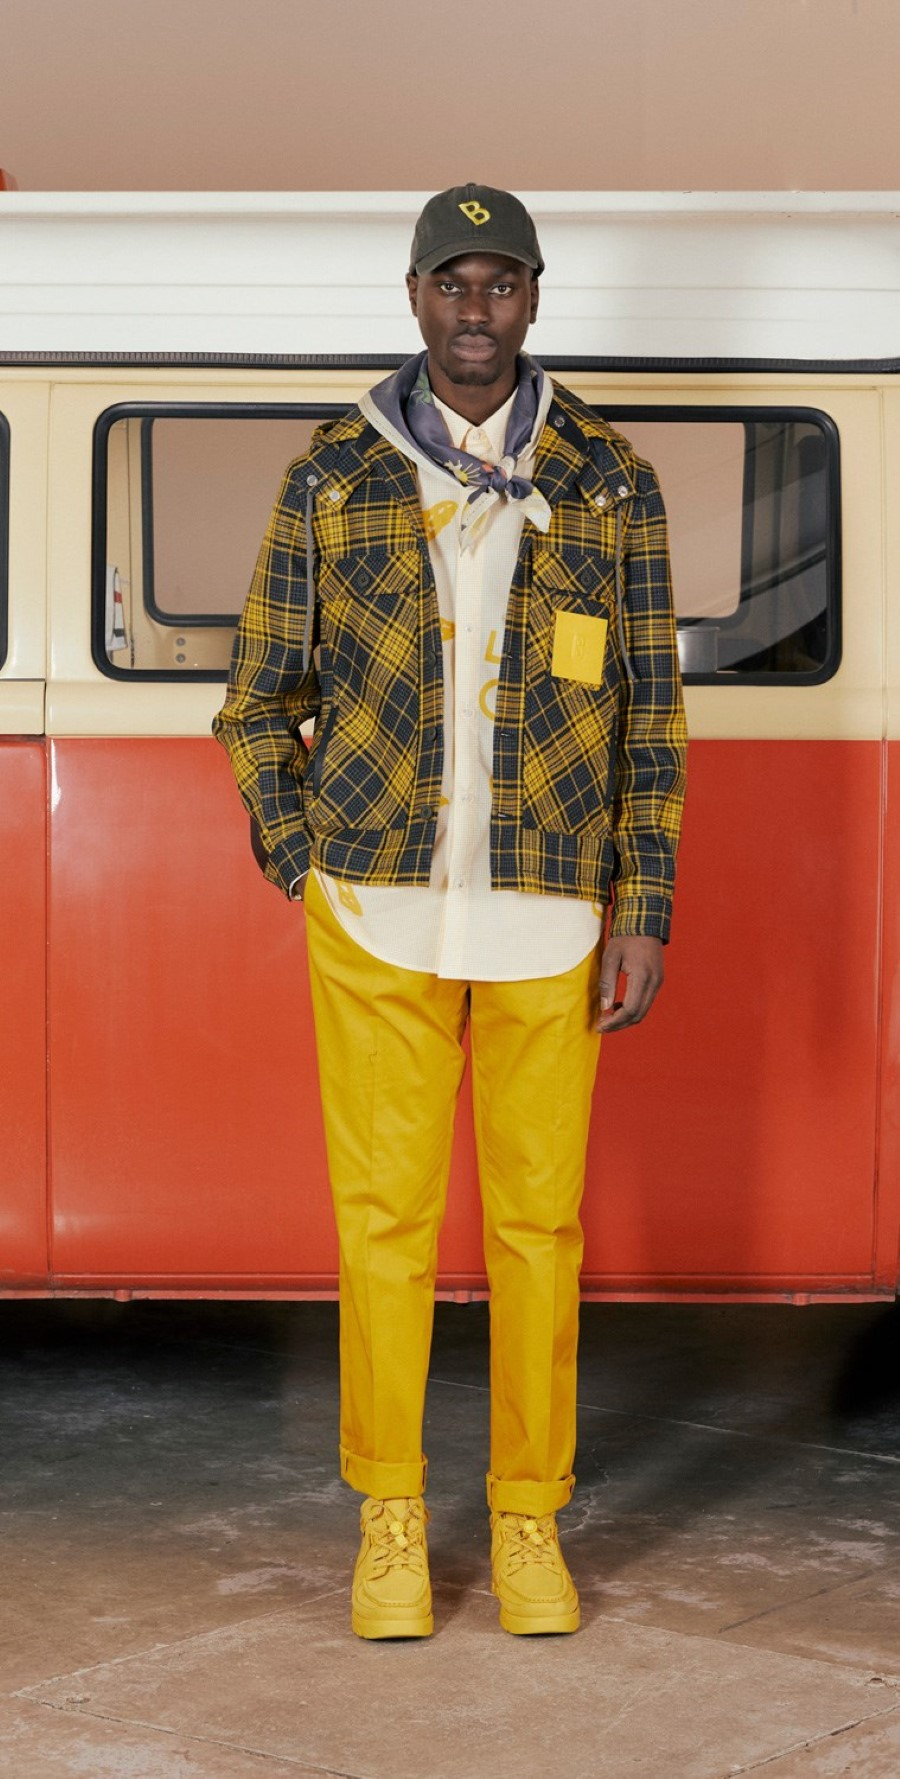 Band Of Outsiders - Automne-Hiver 2020-2021 - London Fashion Week Men's